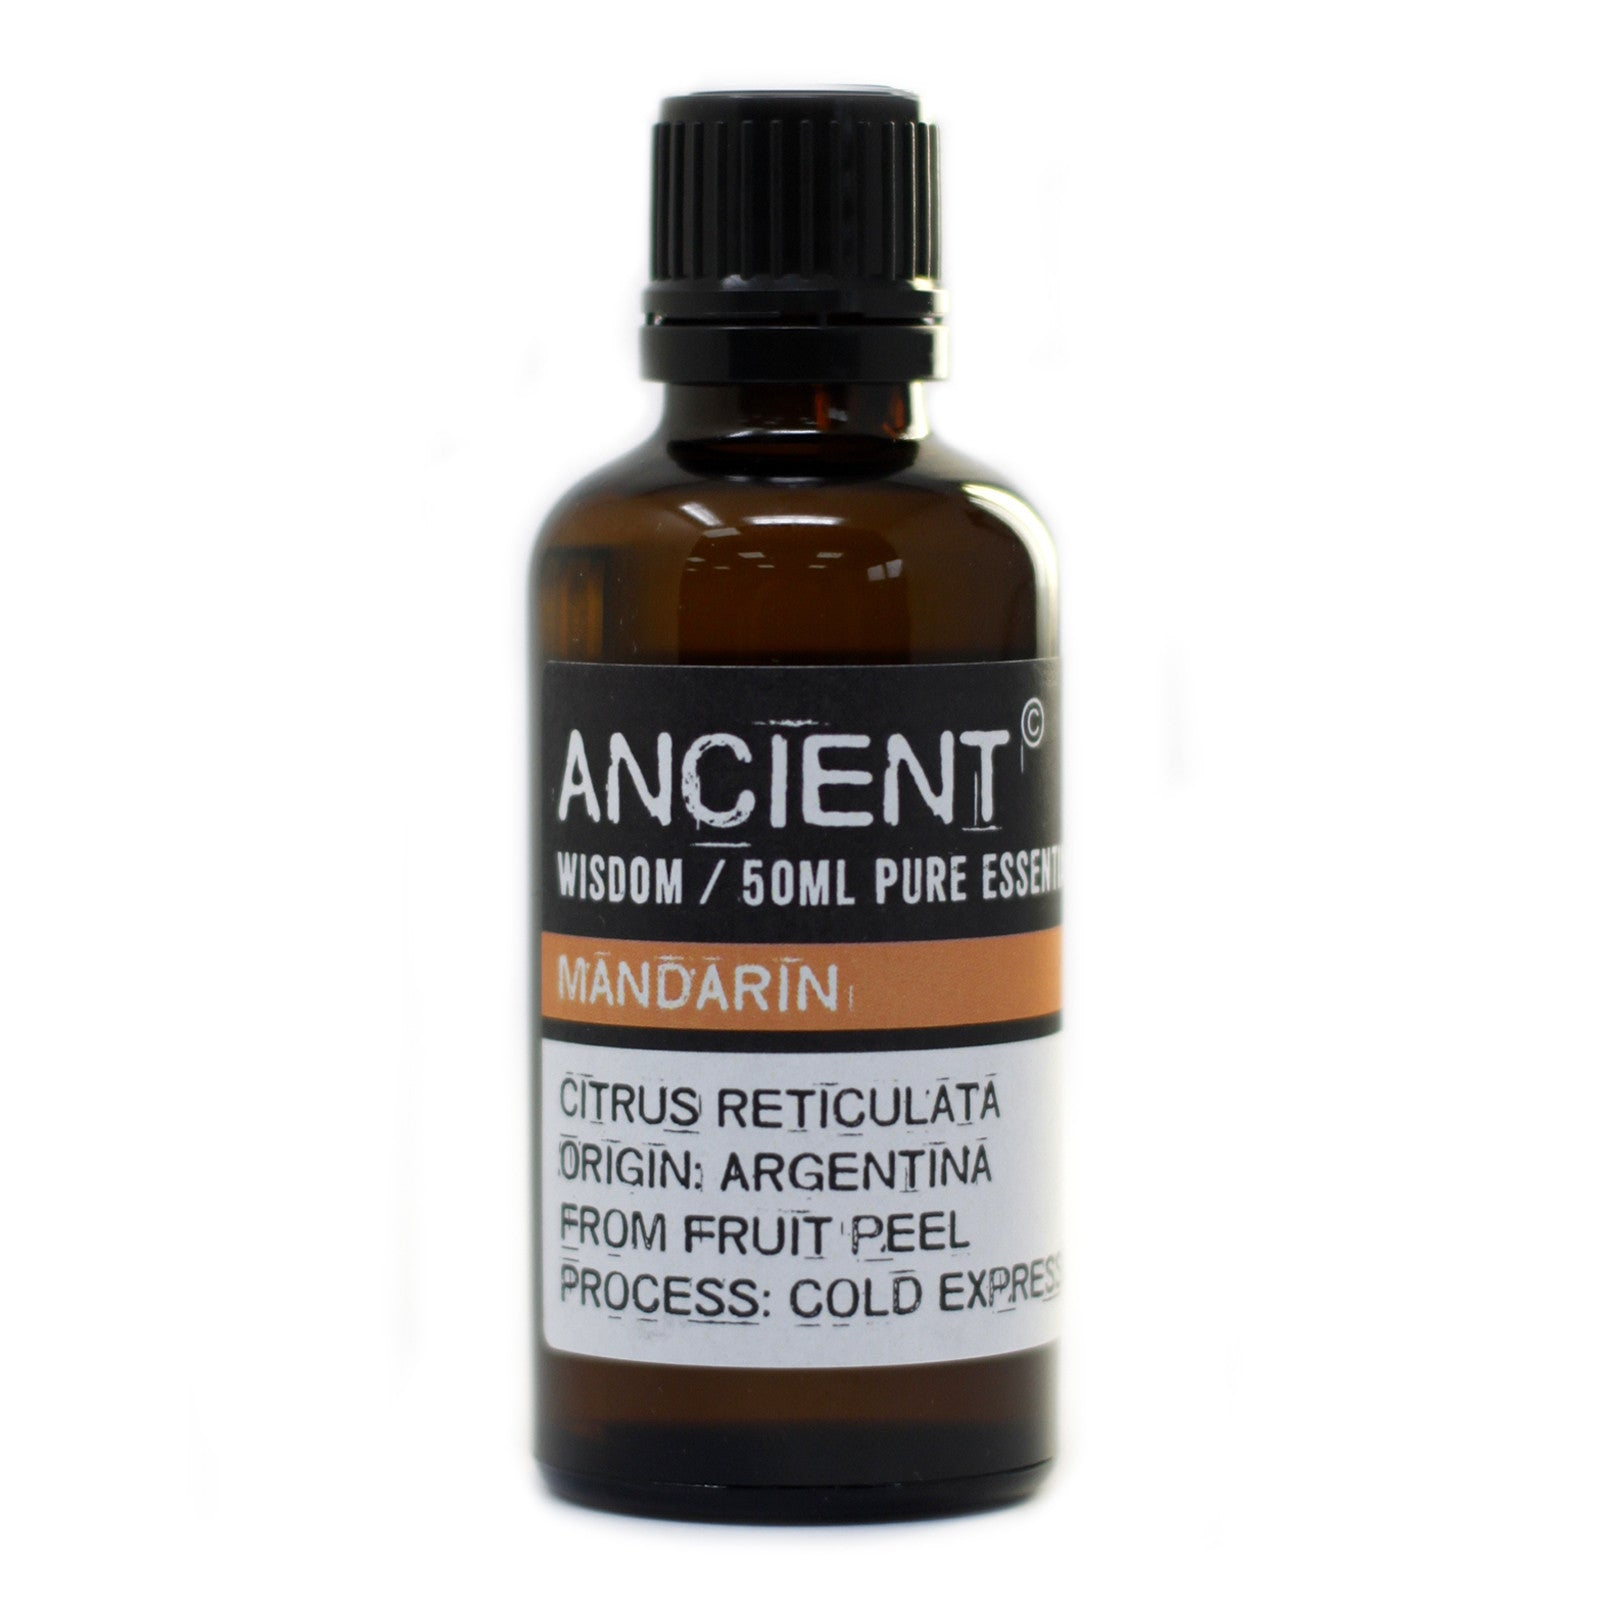 Mandarin Organic Essential Oil